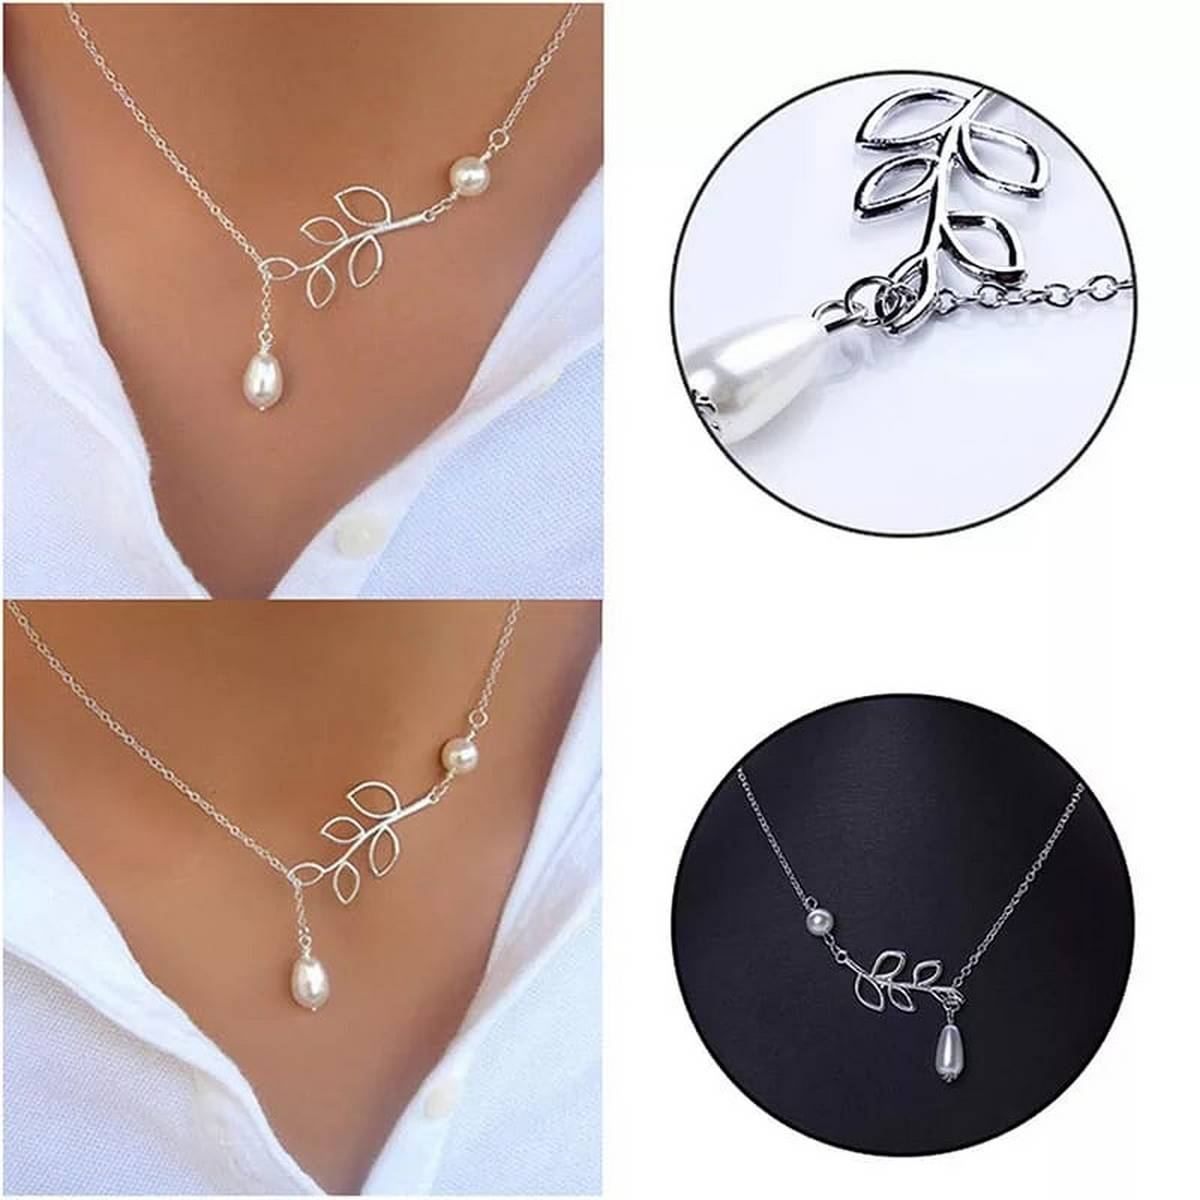 Hot Selling Luck Pearl Leaf Pendants Necklaces For Women and Girls - Fashion Jewellery Necklace